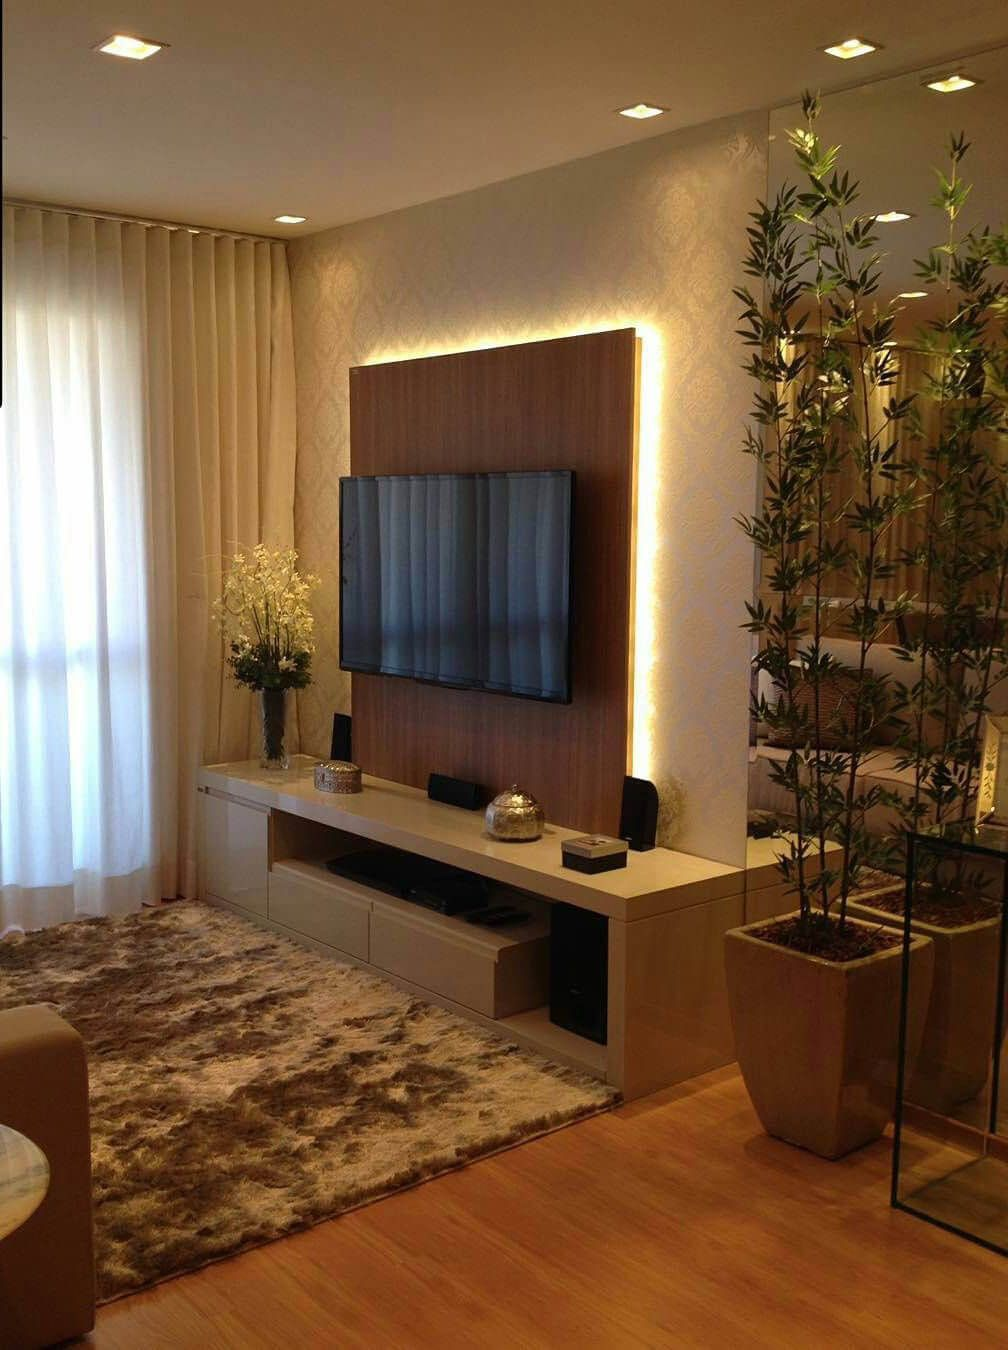 Modern Living Room Lounge Design Ideas With Long Fire Place On Cabinet Tv Design With Simple Ceiling Gy Trendy Living Rooms Contemporary Living Room Home Decor